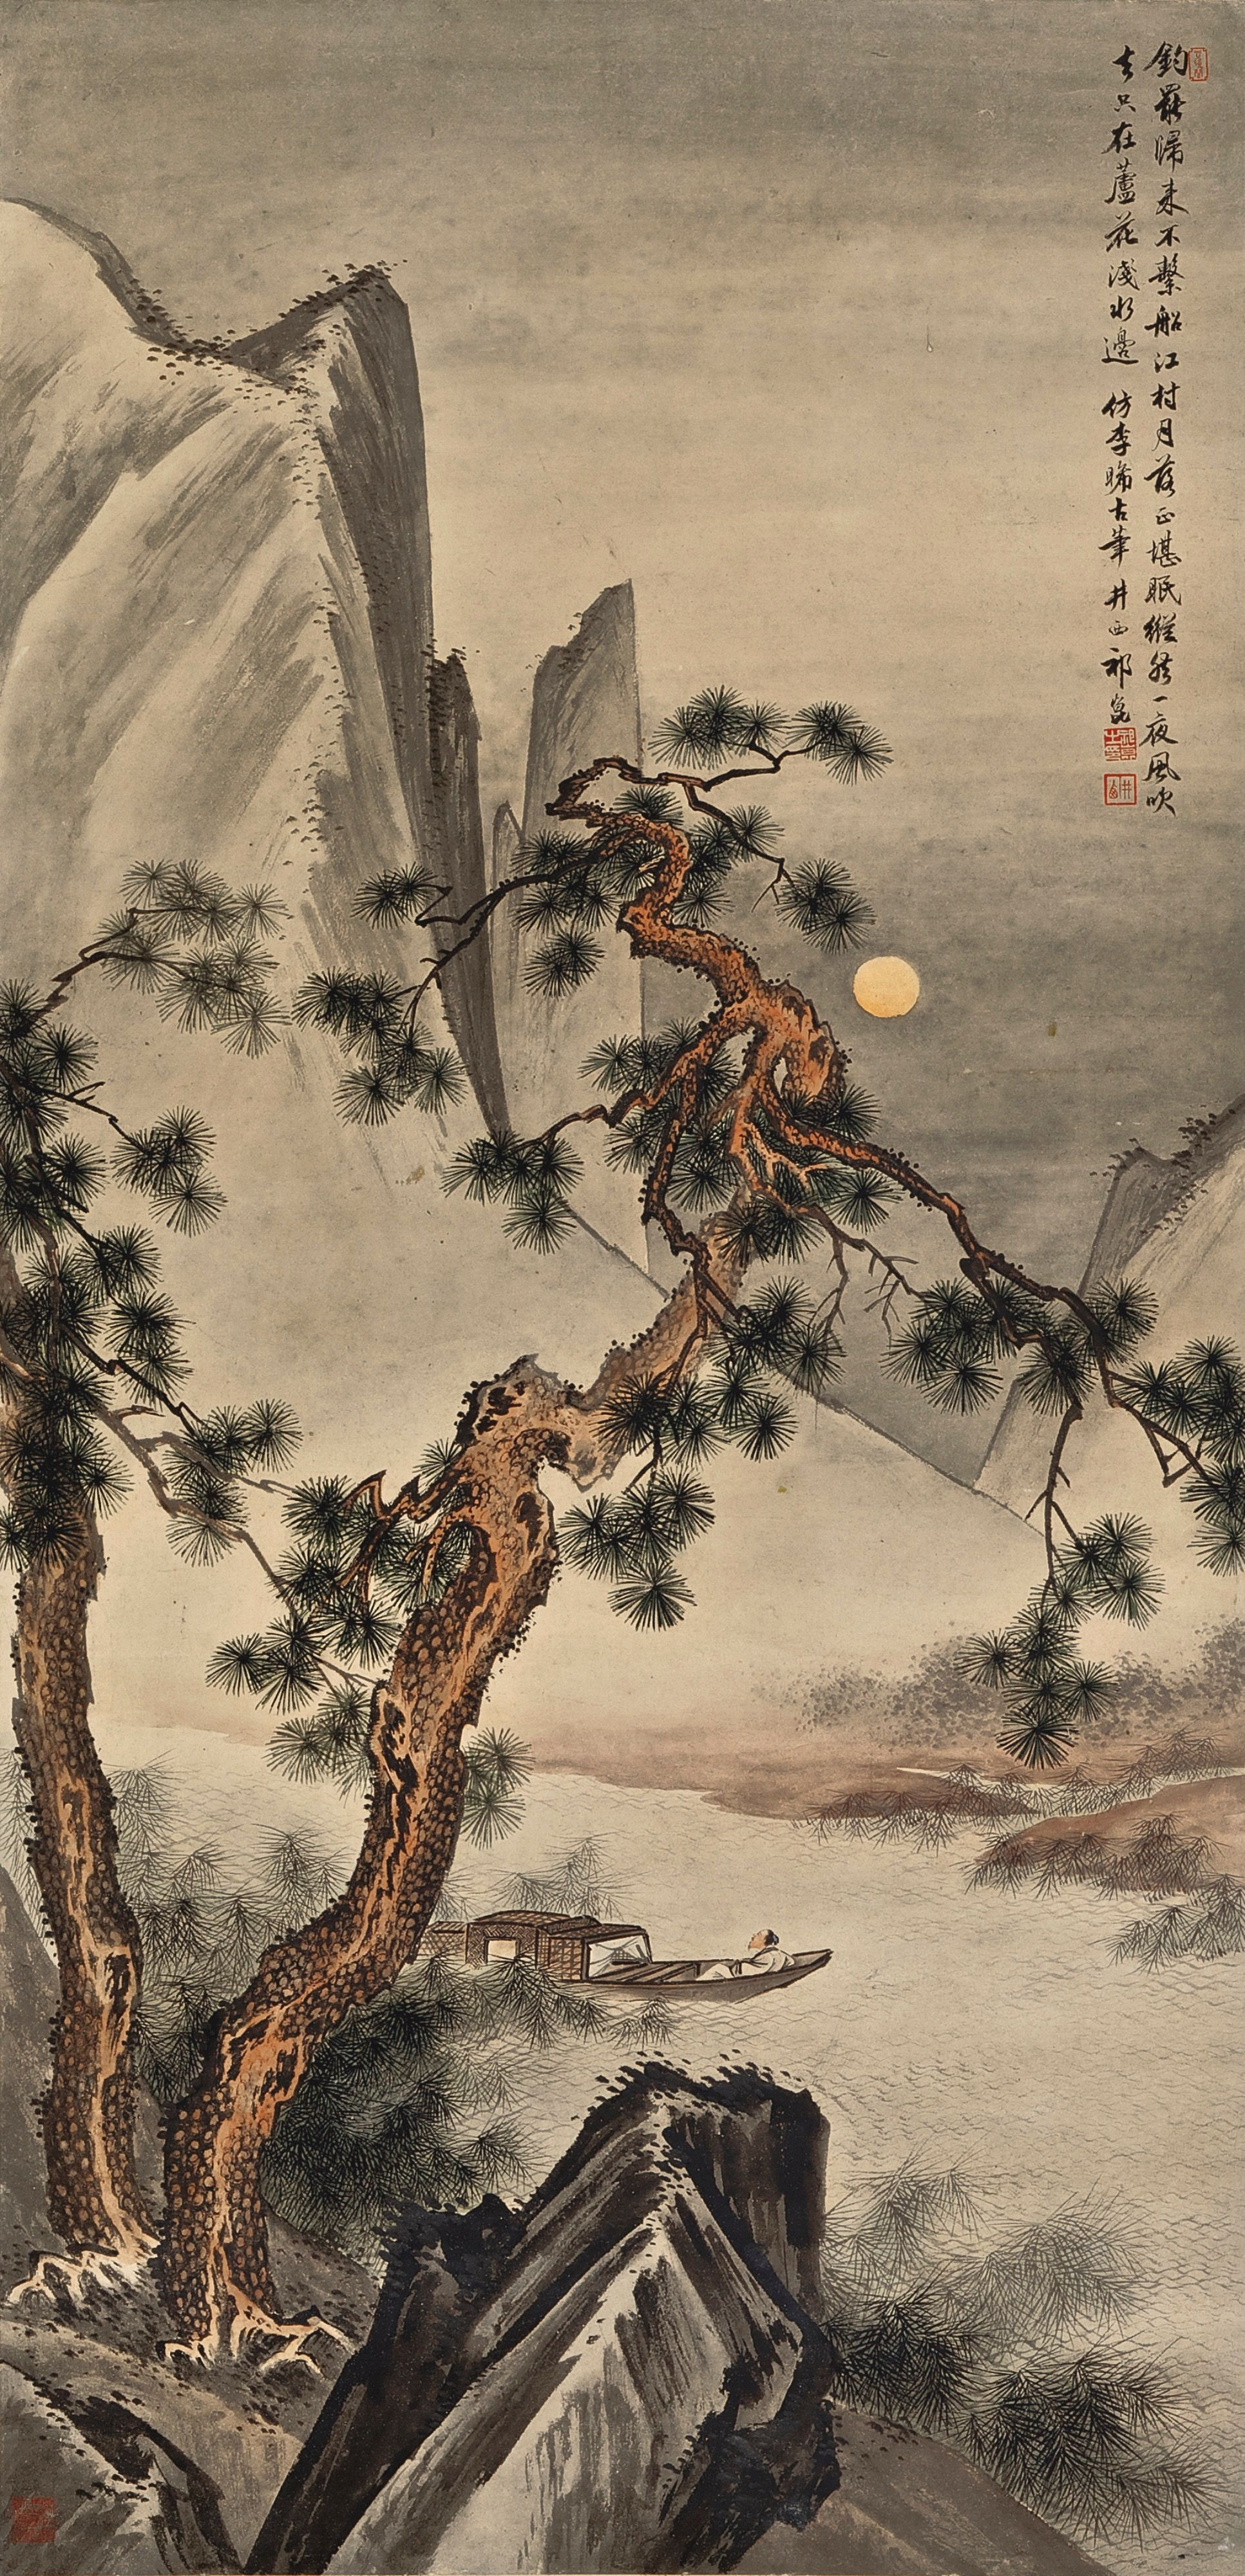 Pingl par mary sur chinese hand painted prints for Paysage asiatique peinture